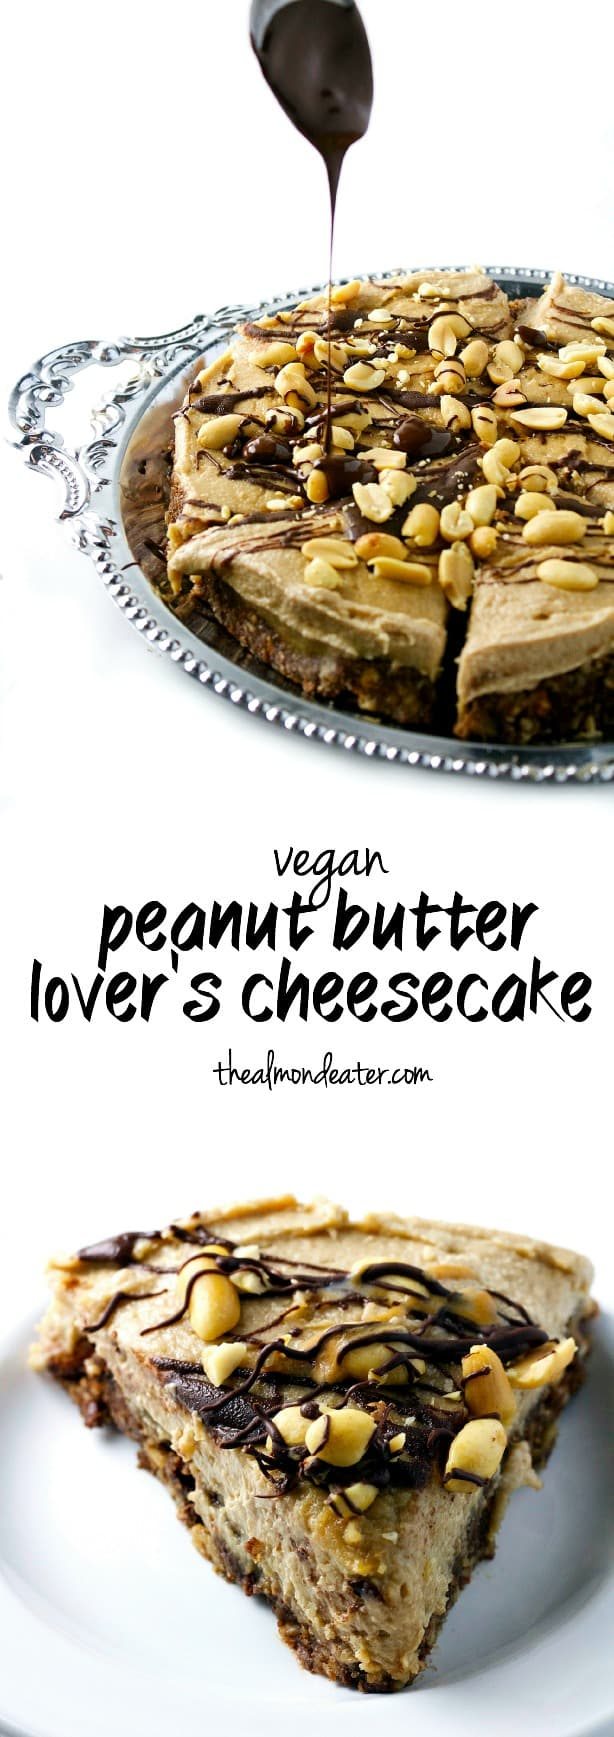 Vegan Peanut Butter Lover's Cheesecake